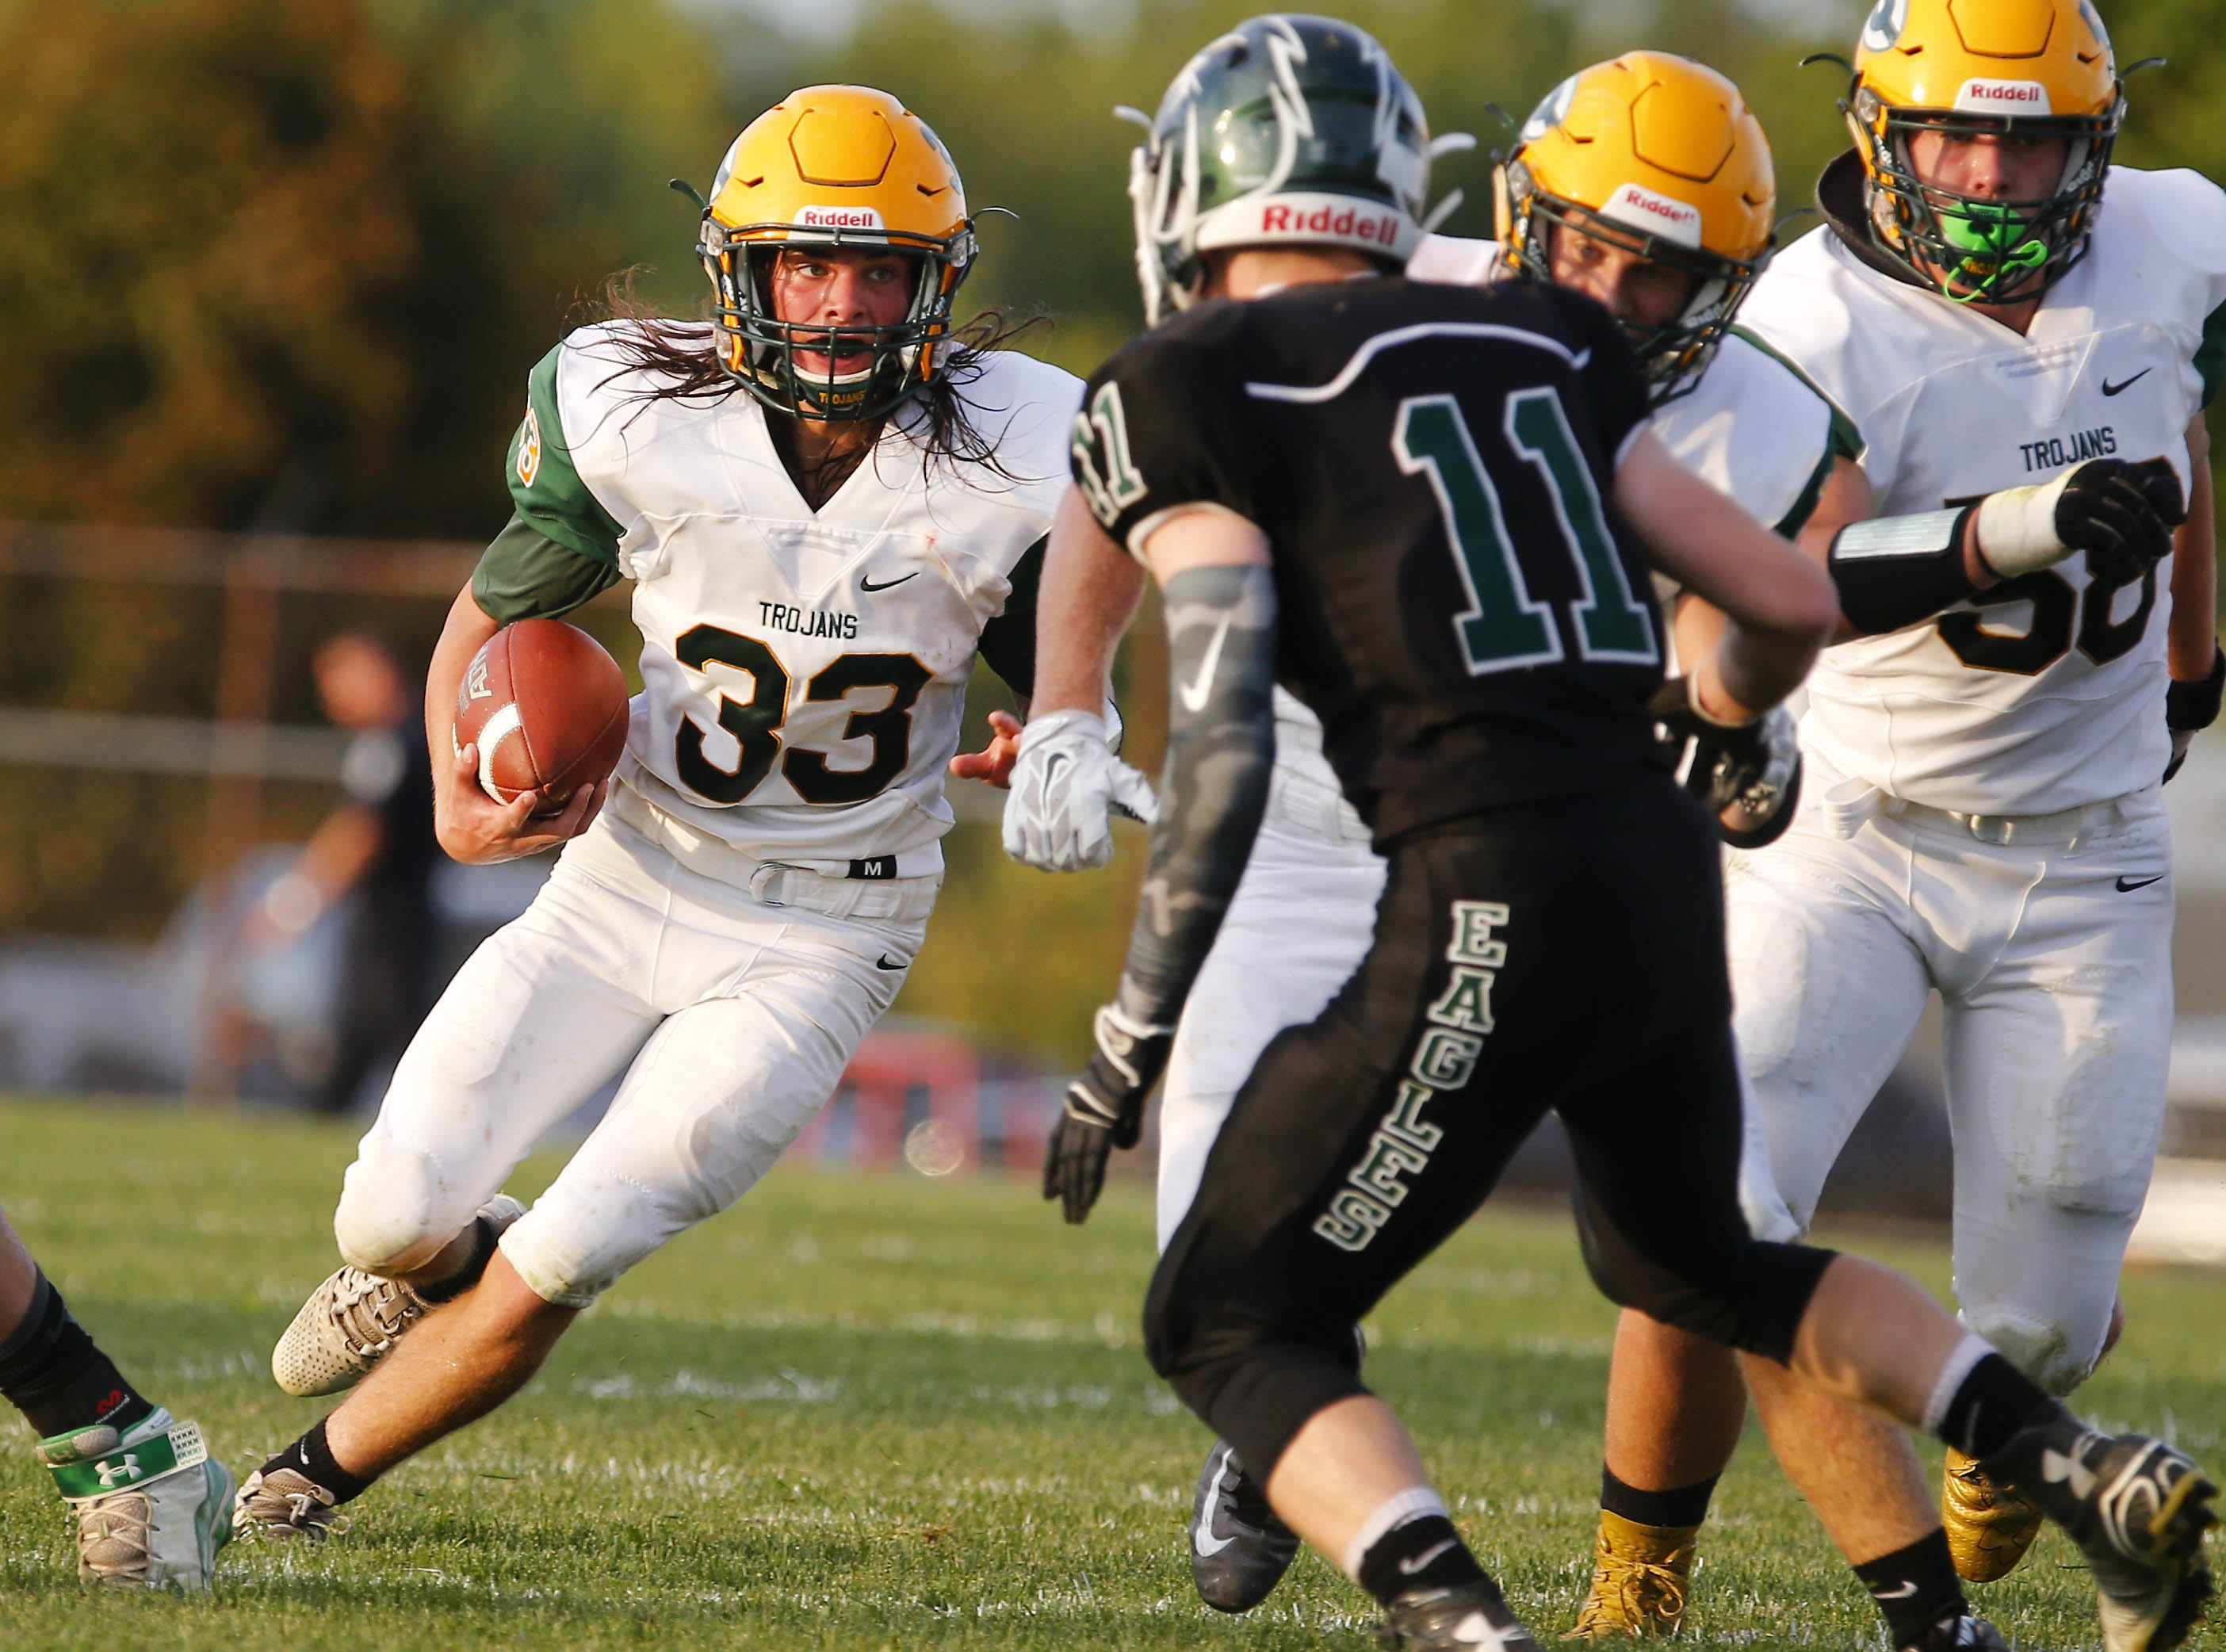 West Seneca East's Ian Dolac finds a hole during the first half of the game at Lake Shore on Friday night.